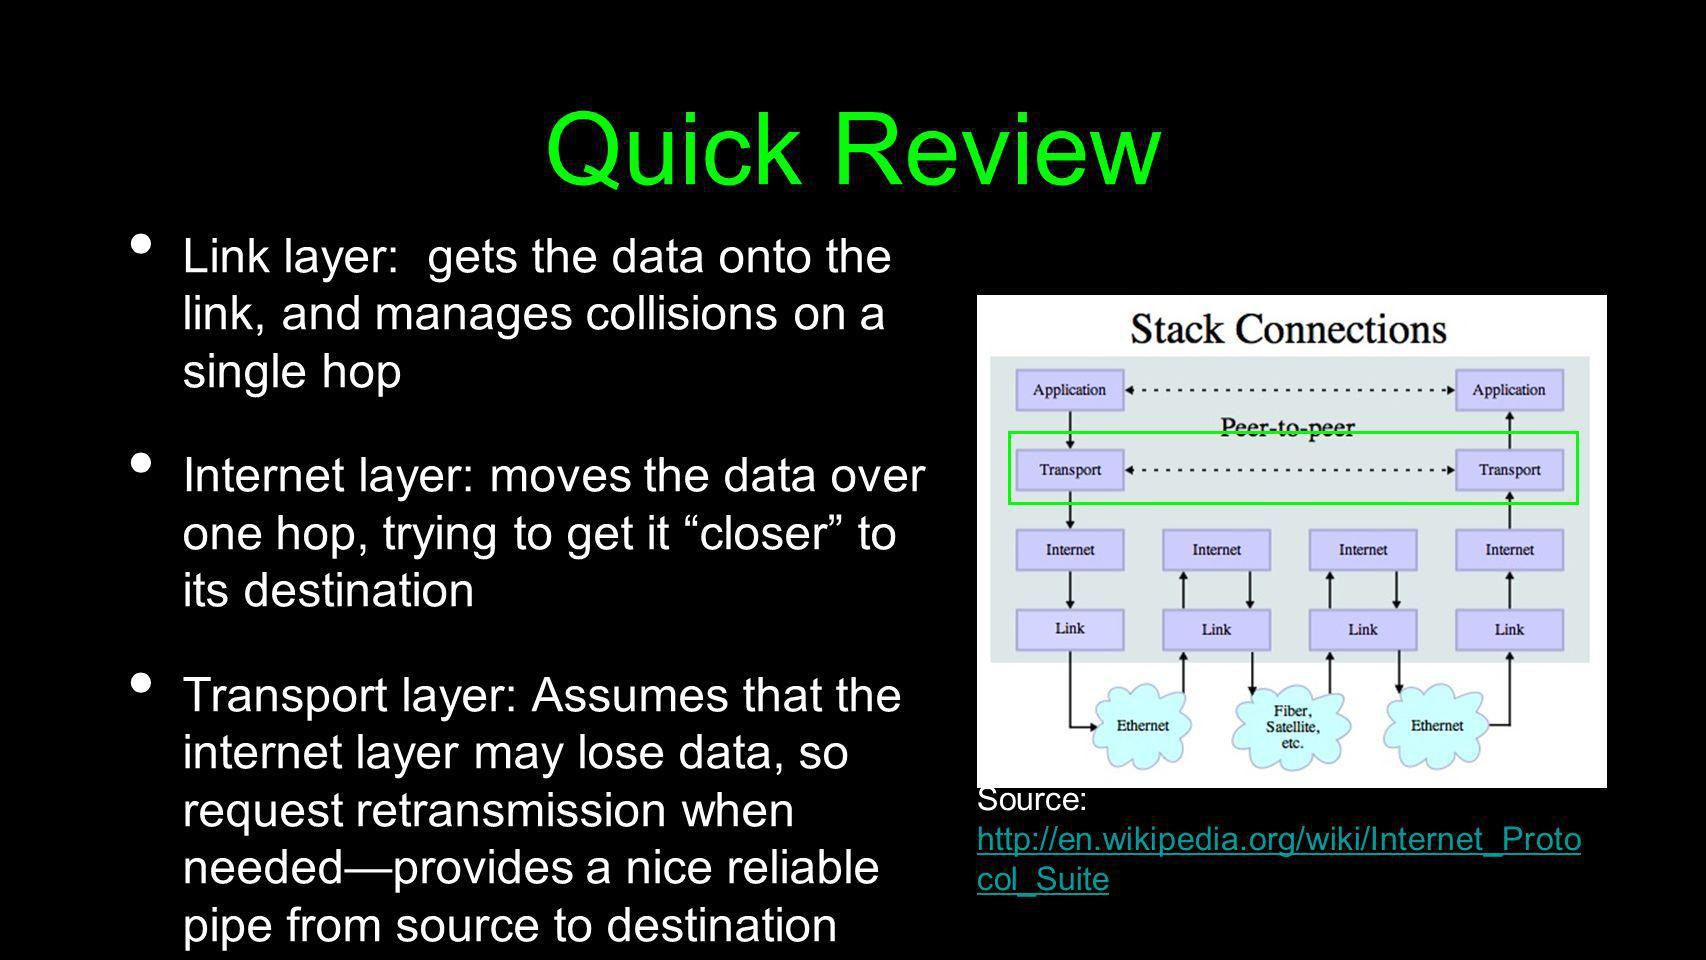 Quick Review Link layer: gets the data onto the link, and manages collisions on a single hop Internet layer: moves the data over one hop, trying to ge